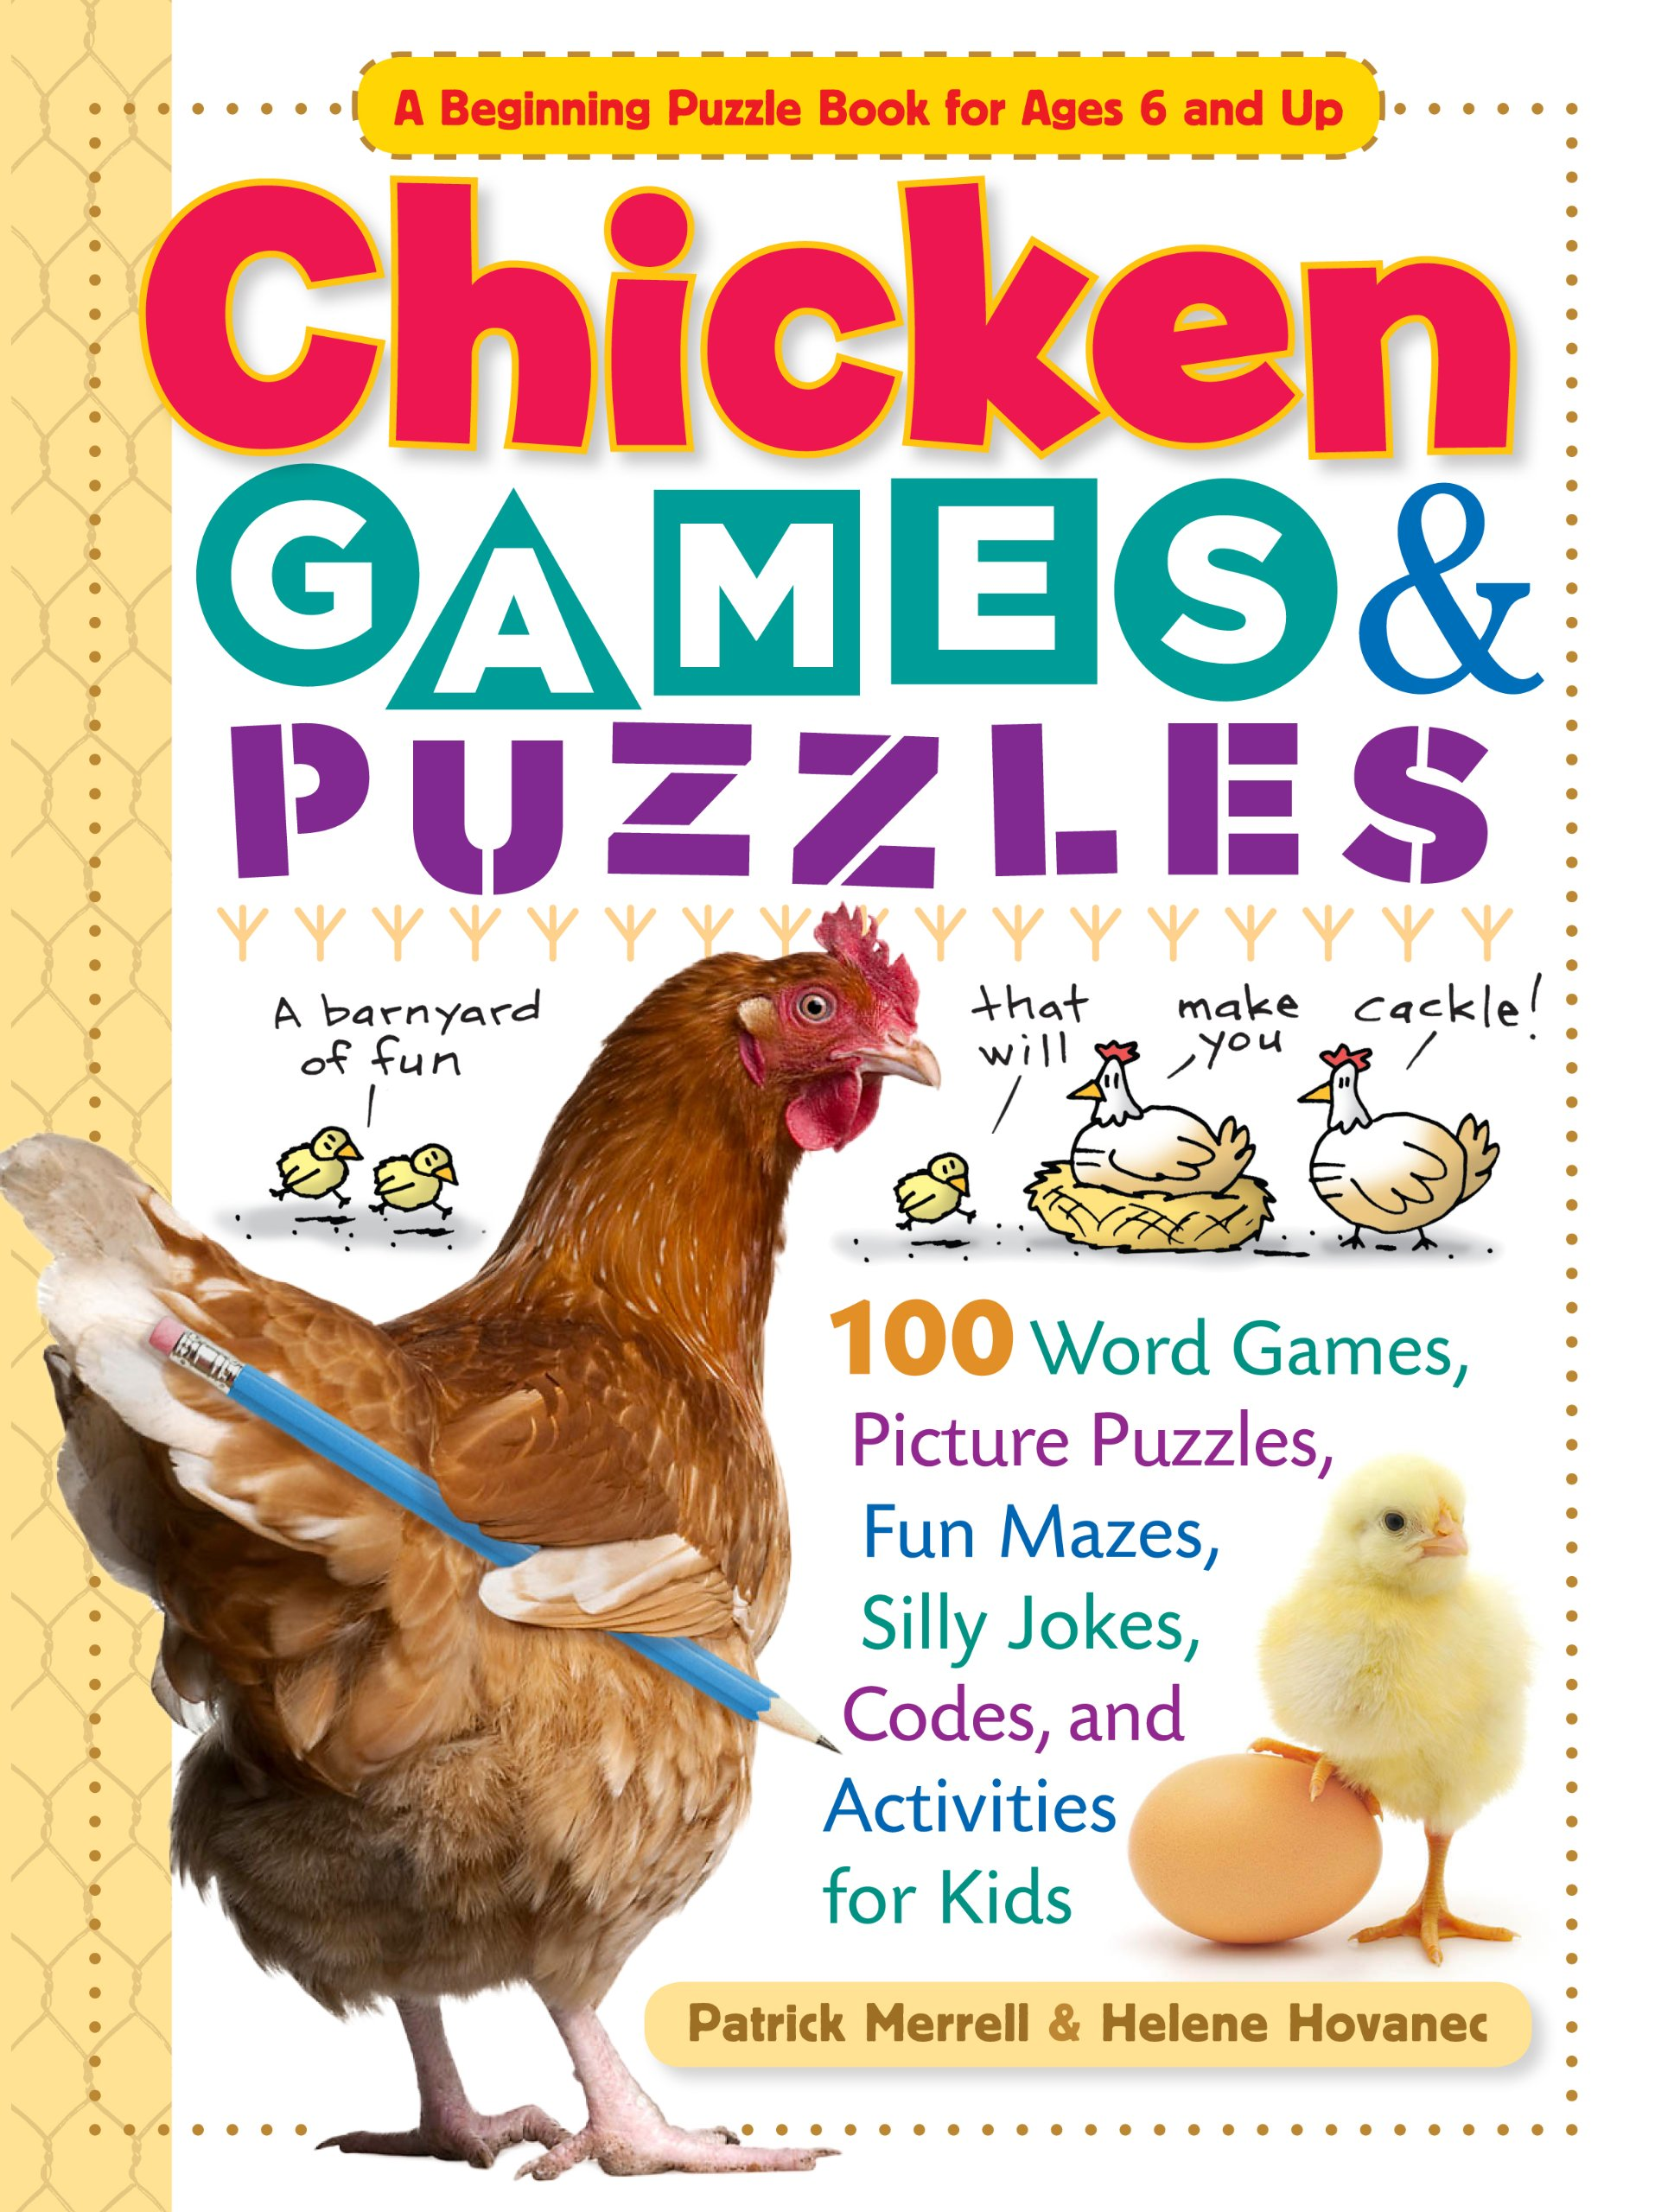 Chicken Games Puzzles Picture Activities product image